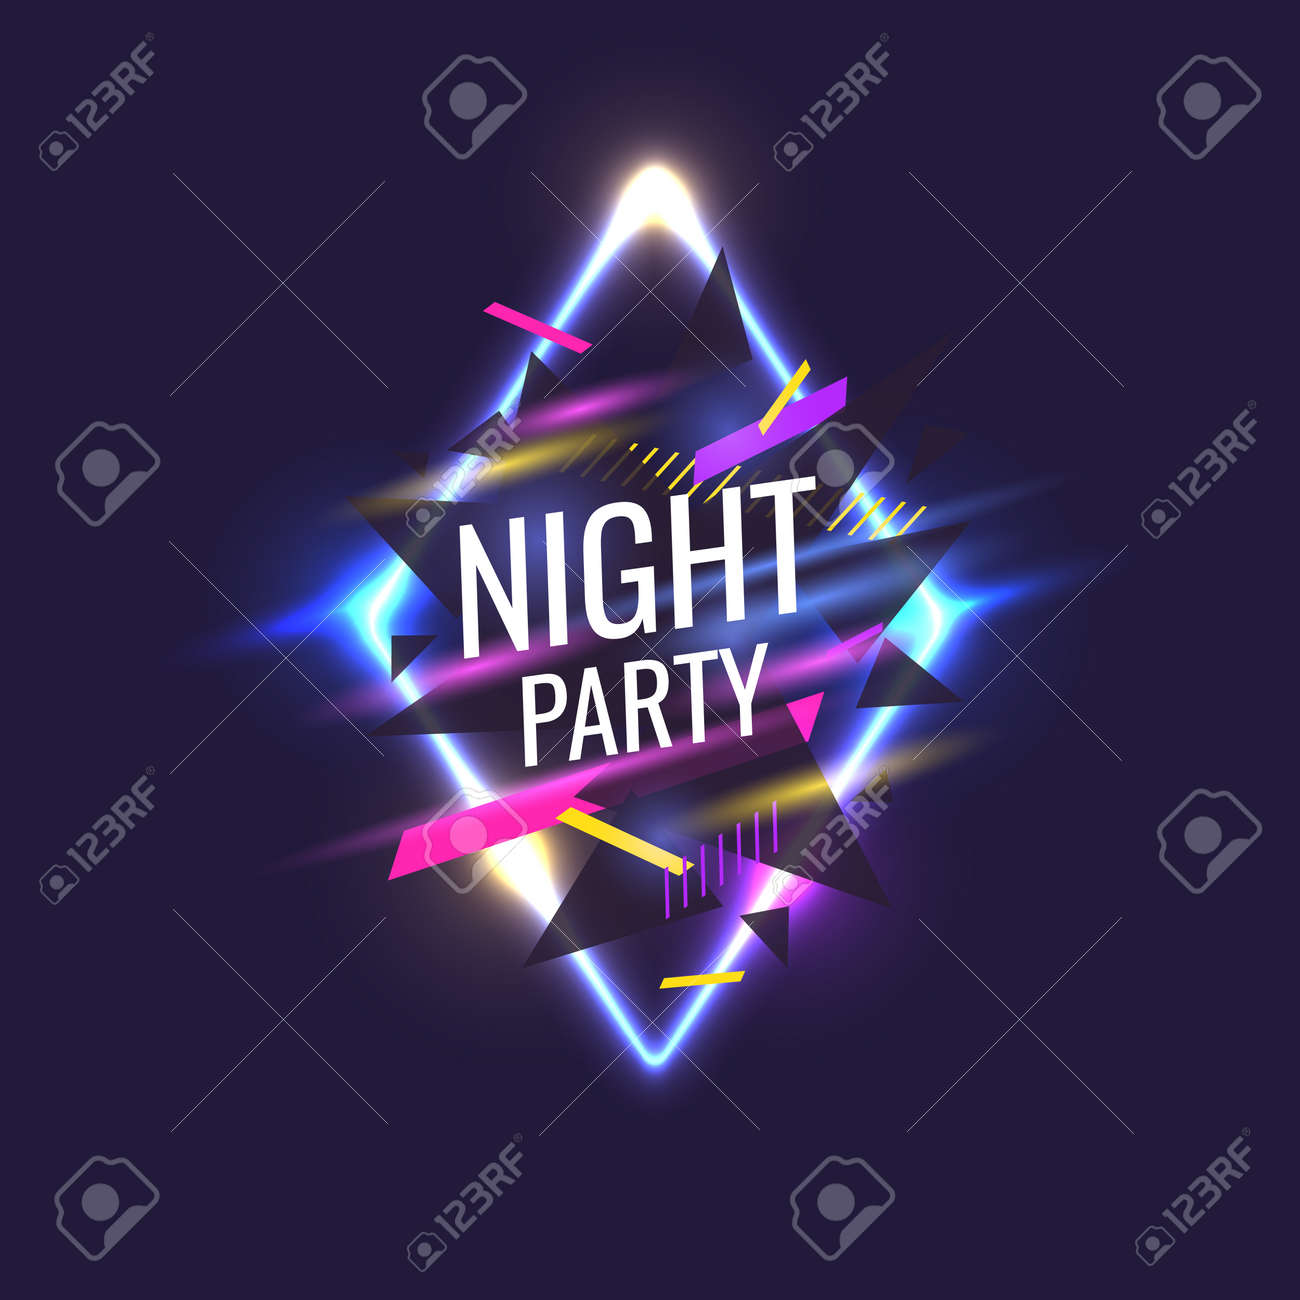 Original Poster For Night Paty Geometric Shapes And Neon Glow